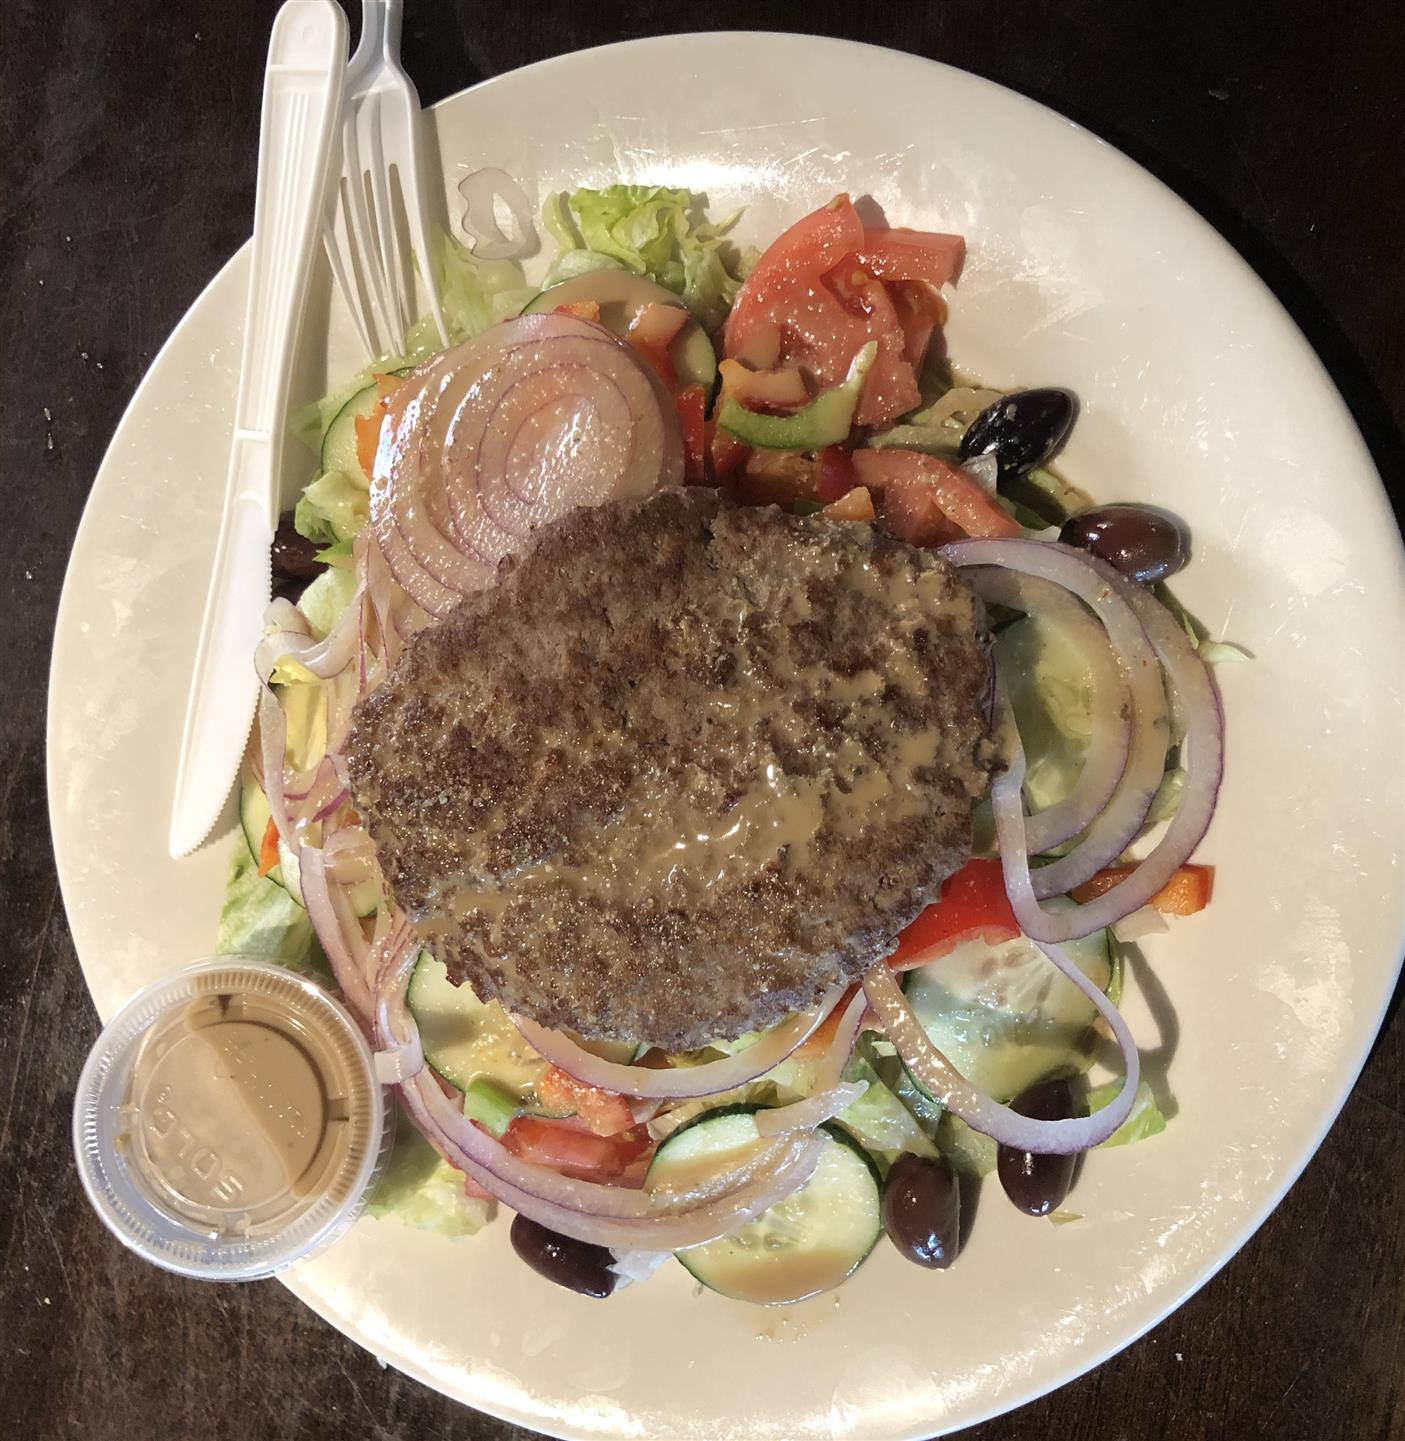 A delicious grilled hamburger on top of our scrumptious house salad